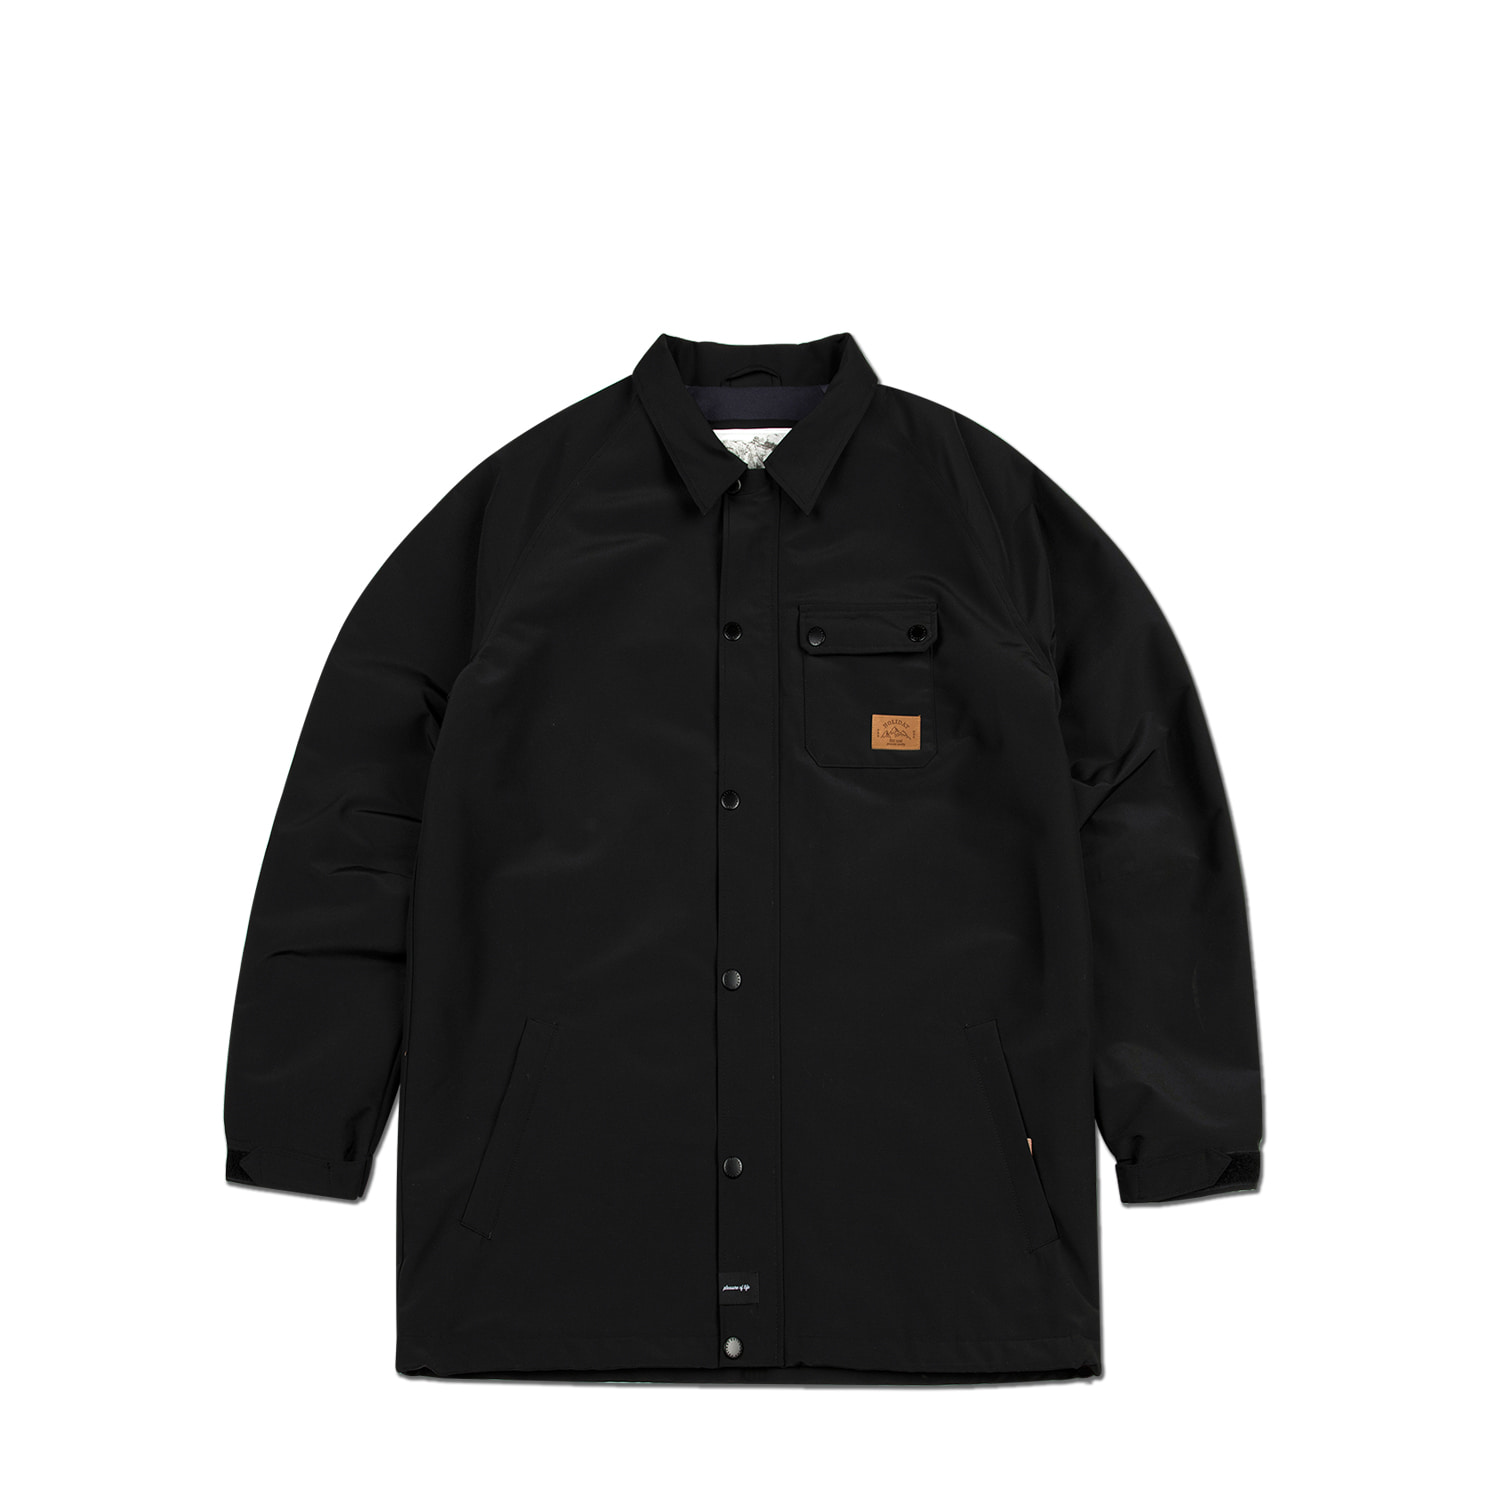 ALL DAY WORK jacket - black